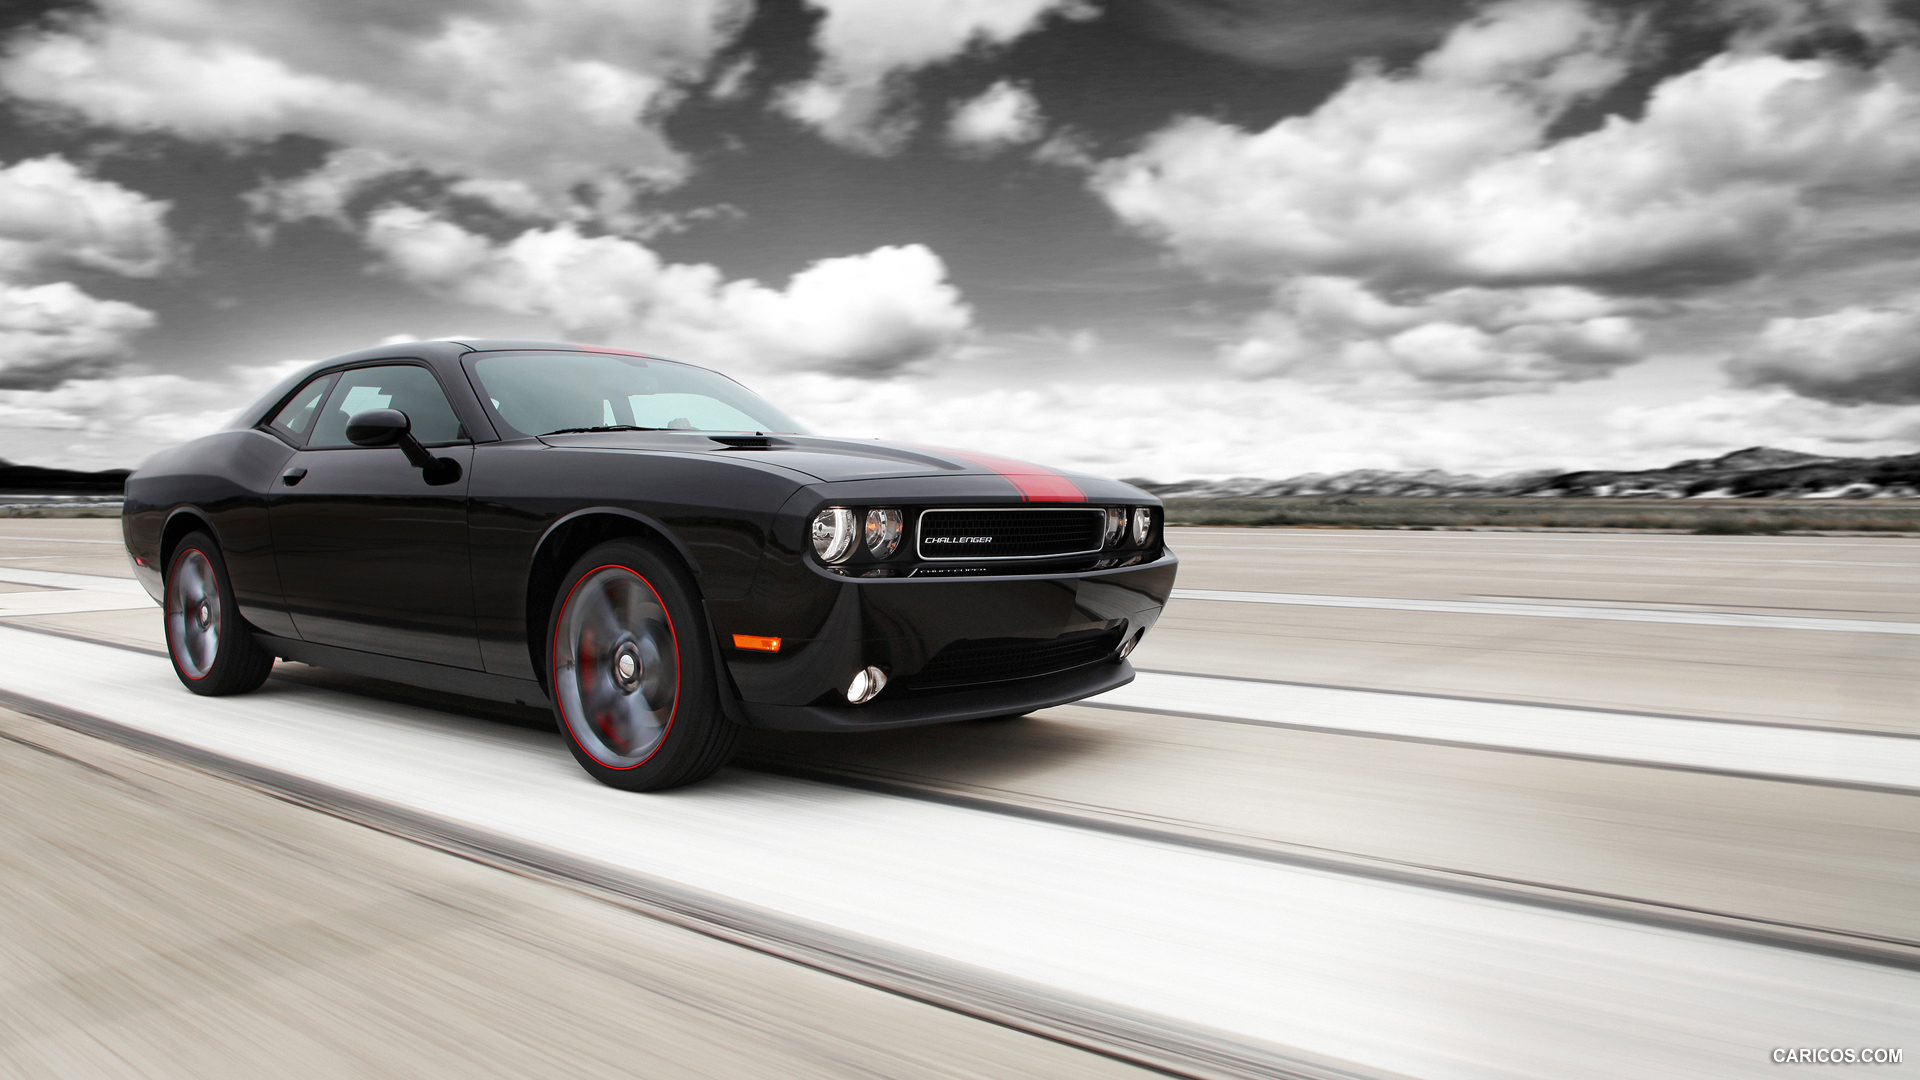 1920x1080 - Dodge Challenger Rallye Wallpapers 12